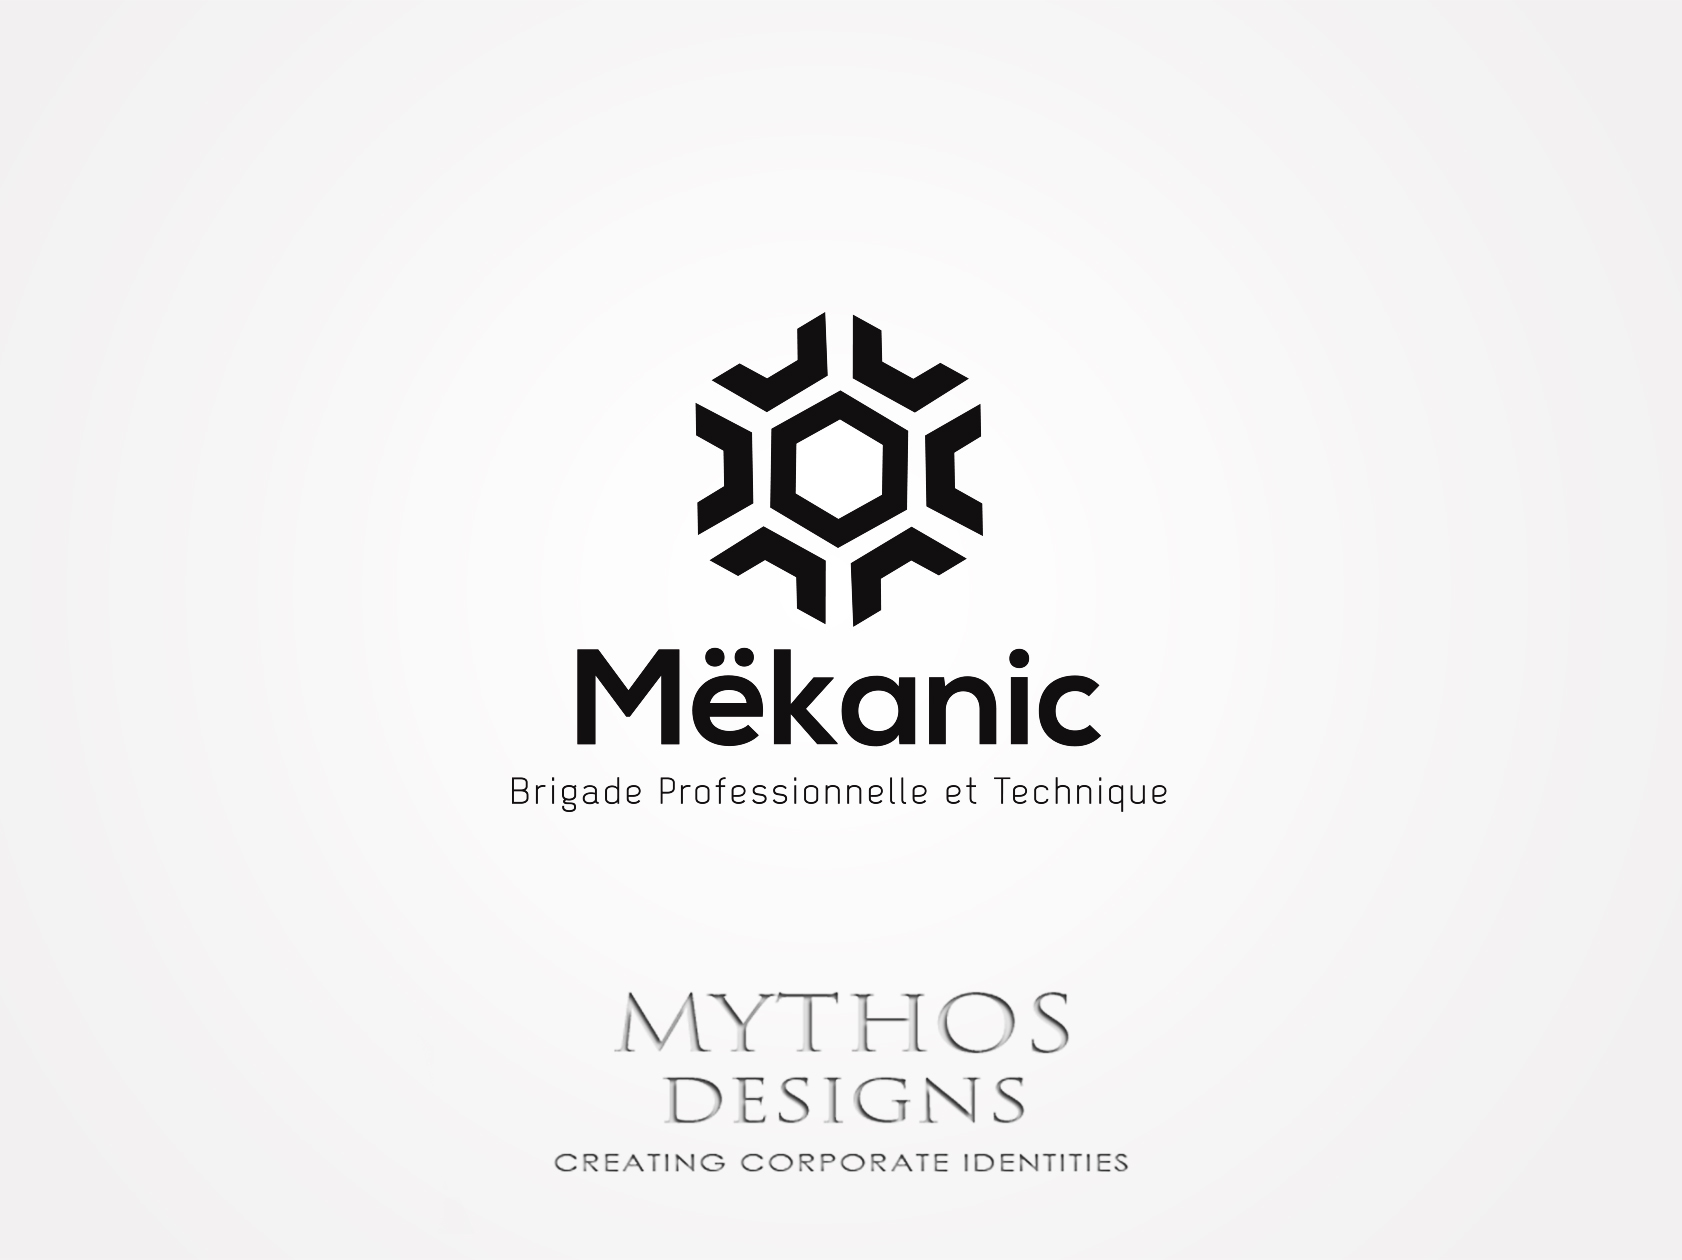 Logo Design by Mythos Designs - Entry No. 210 in the Logo Design Contest Creative Logo Design for MËKANIC - Professional and technical squad.